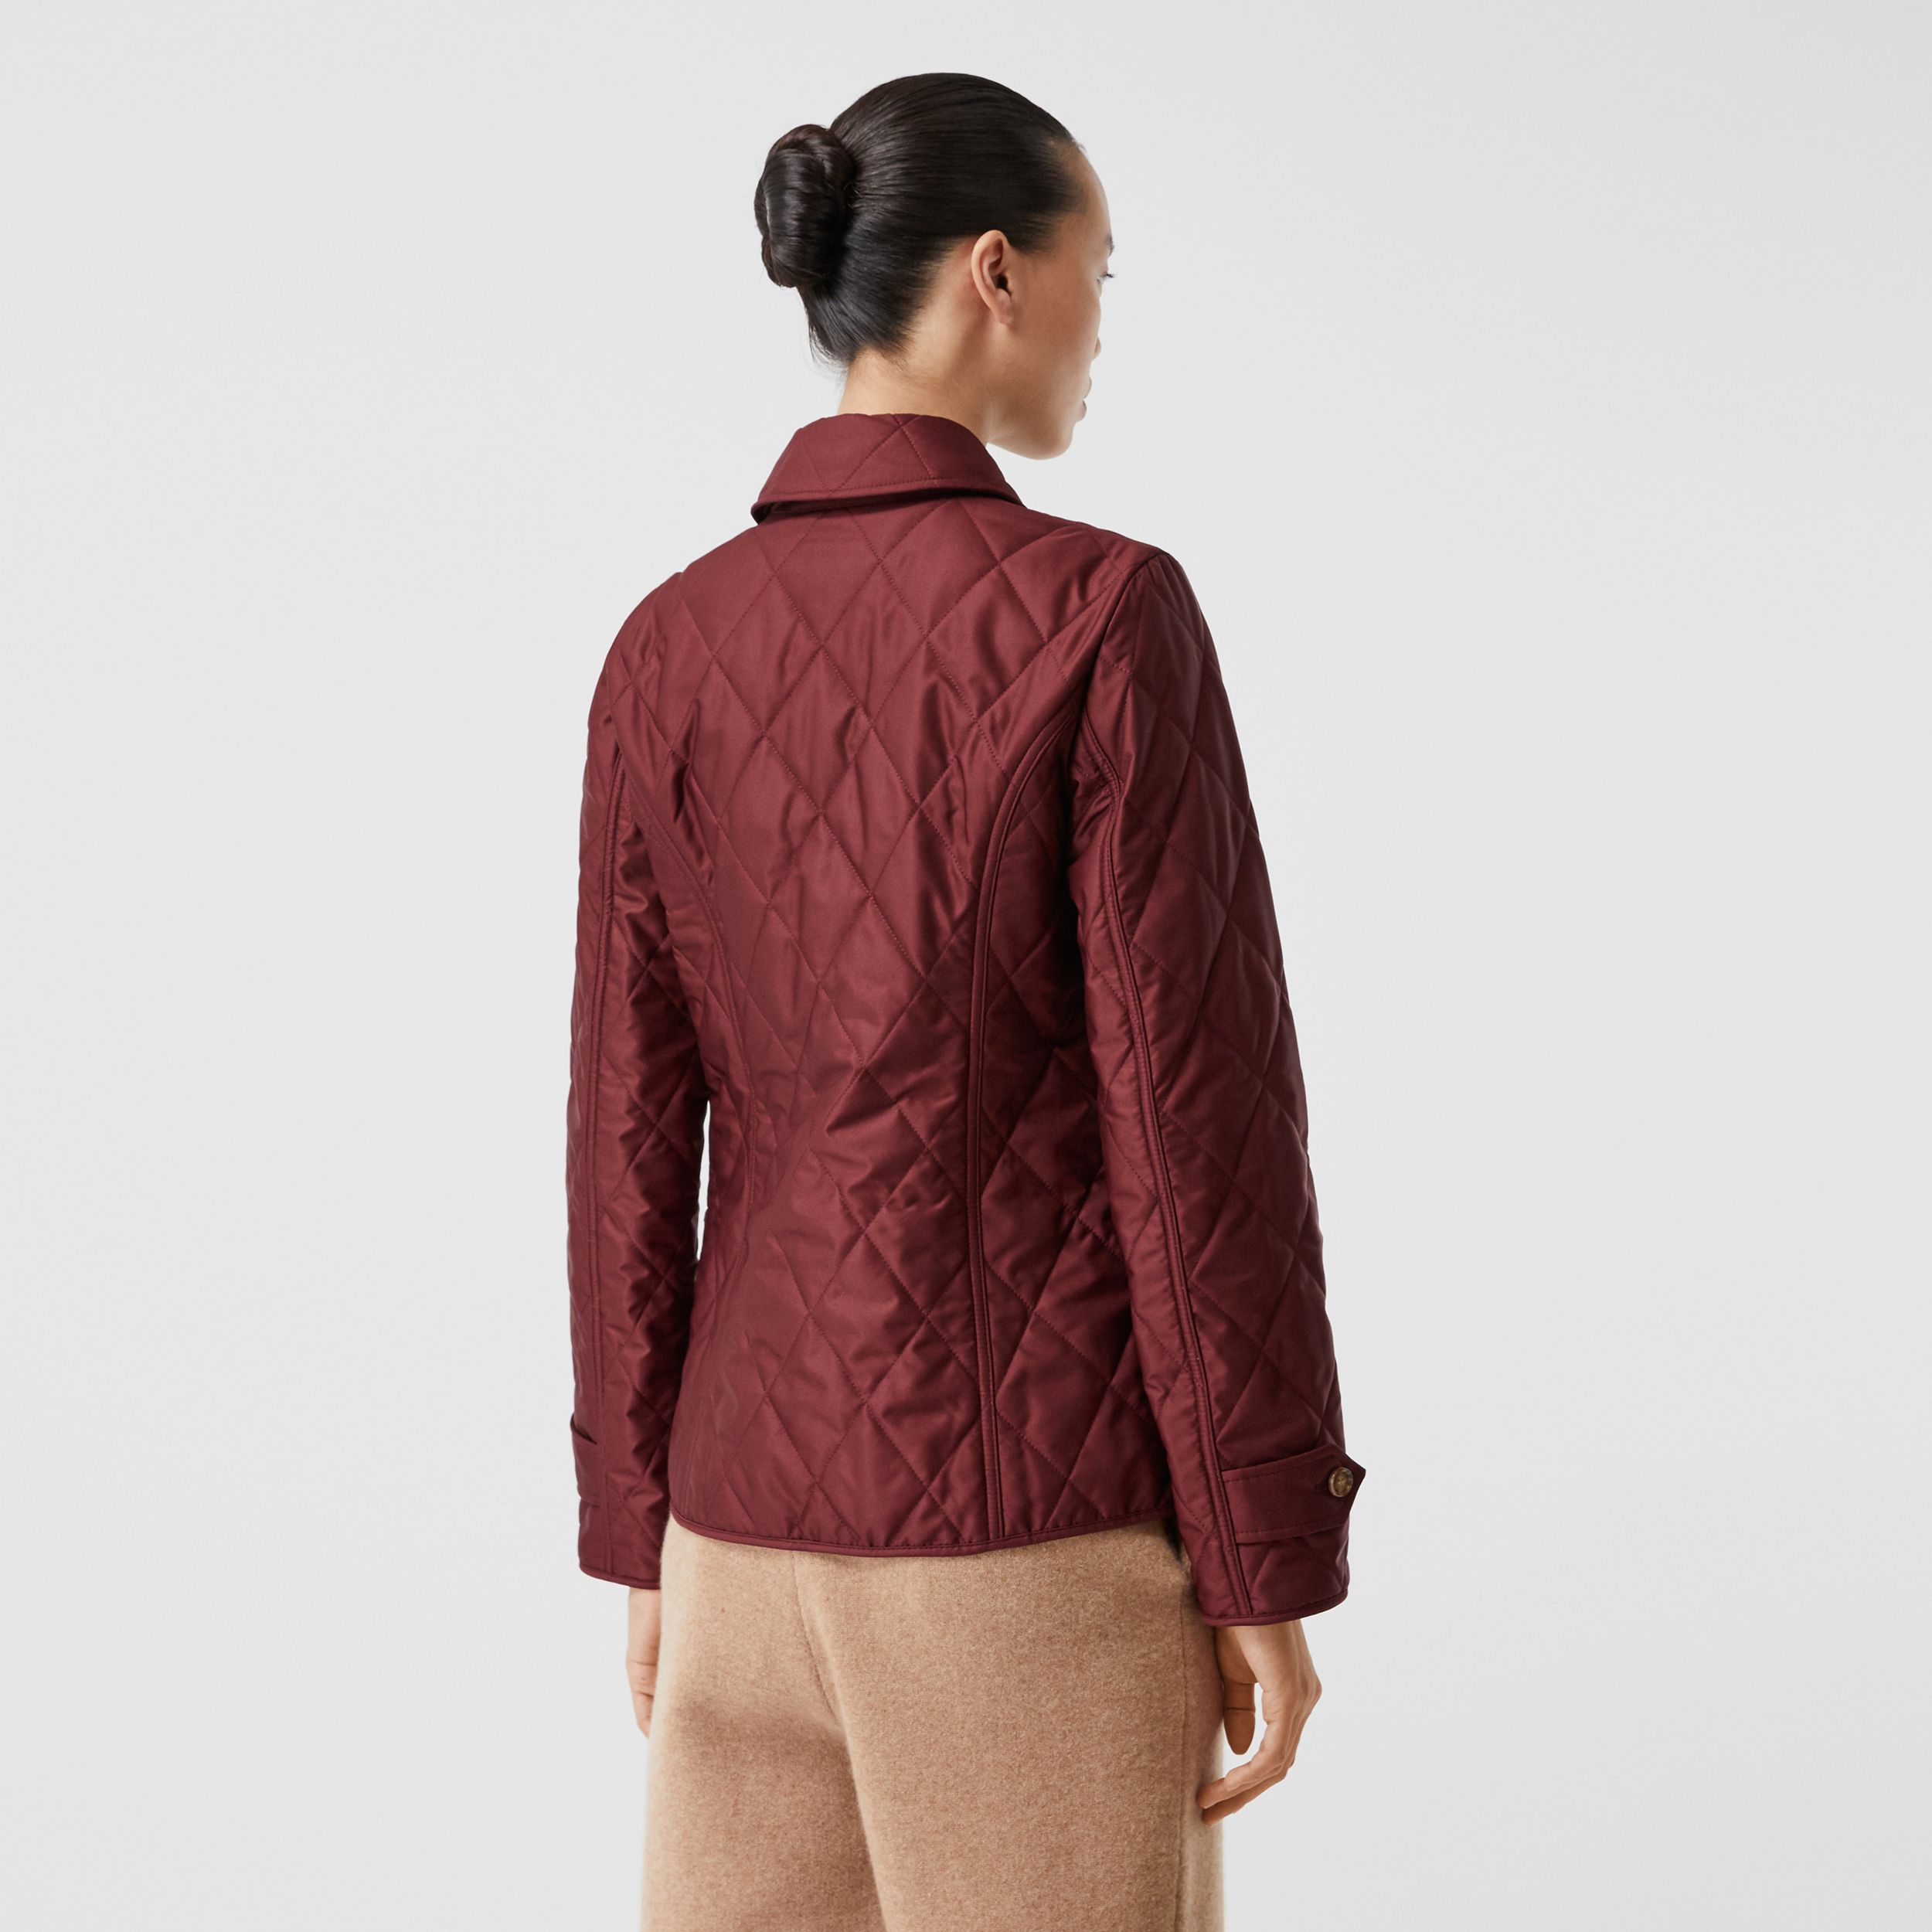 Diamond Quilted Thermoregulated Jacket in Deep Claret - Women | Burberry Australia - 3